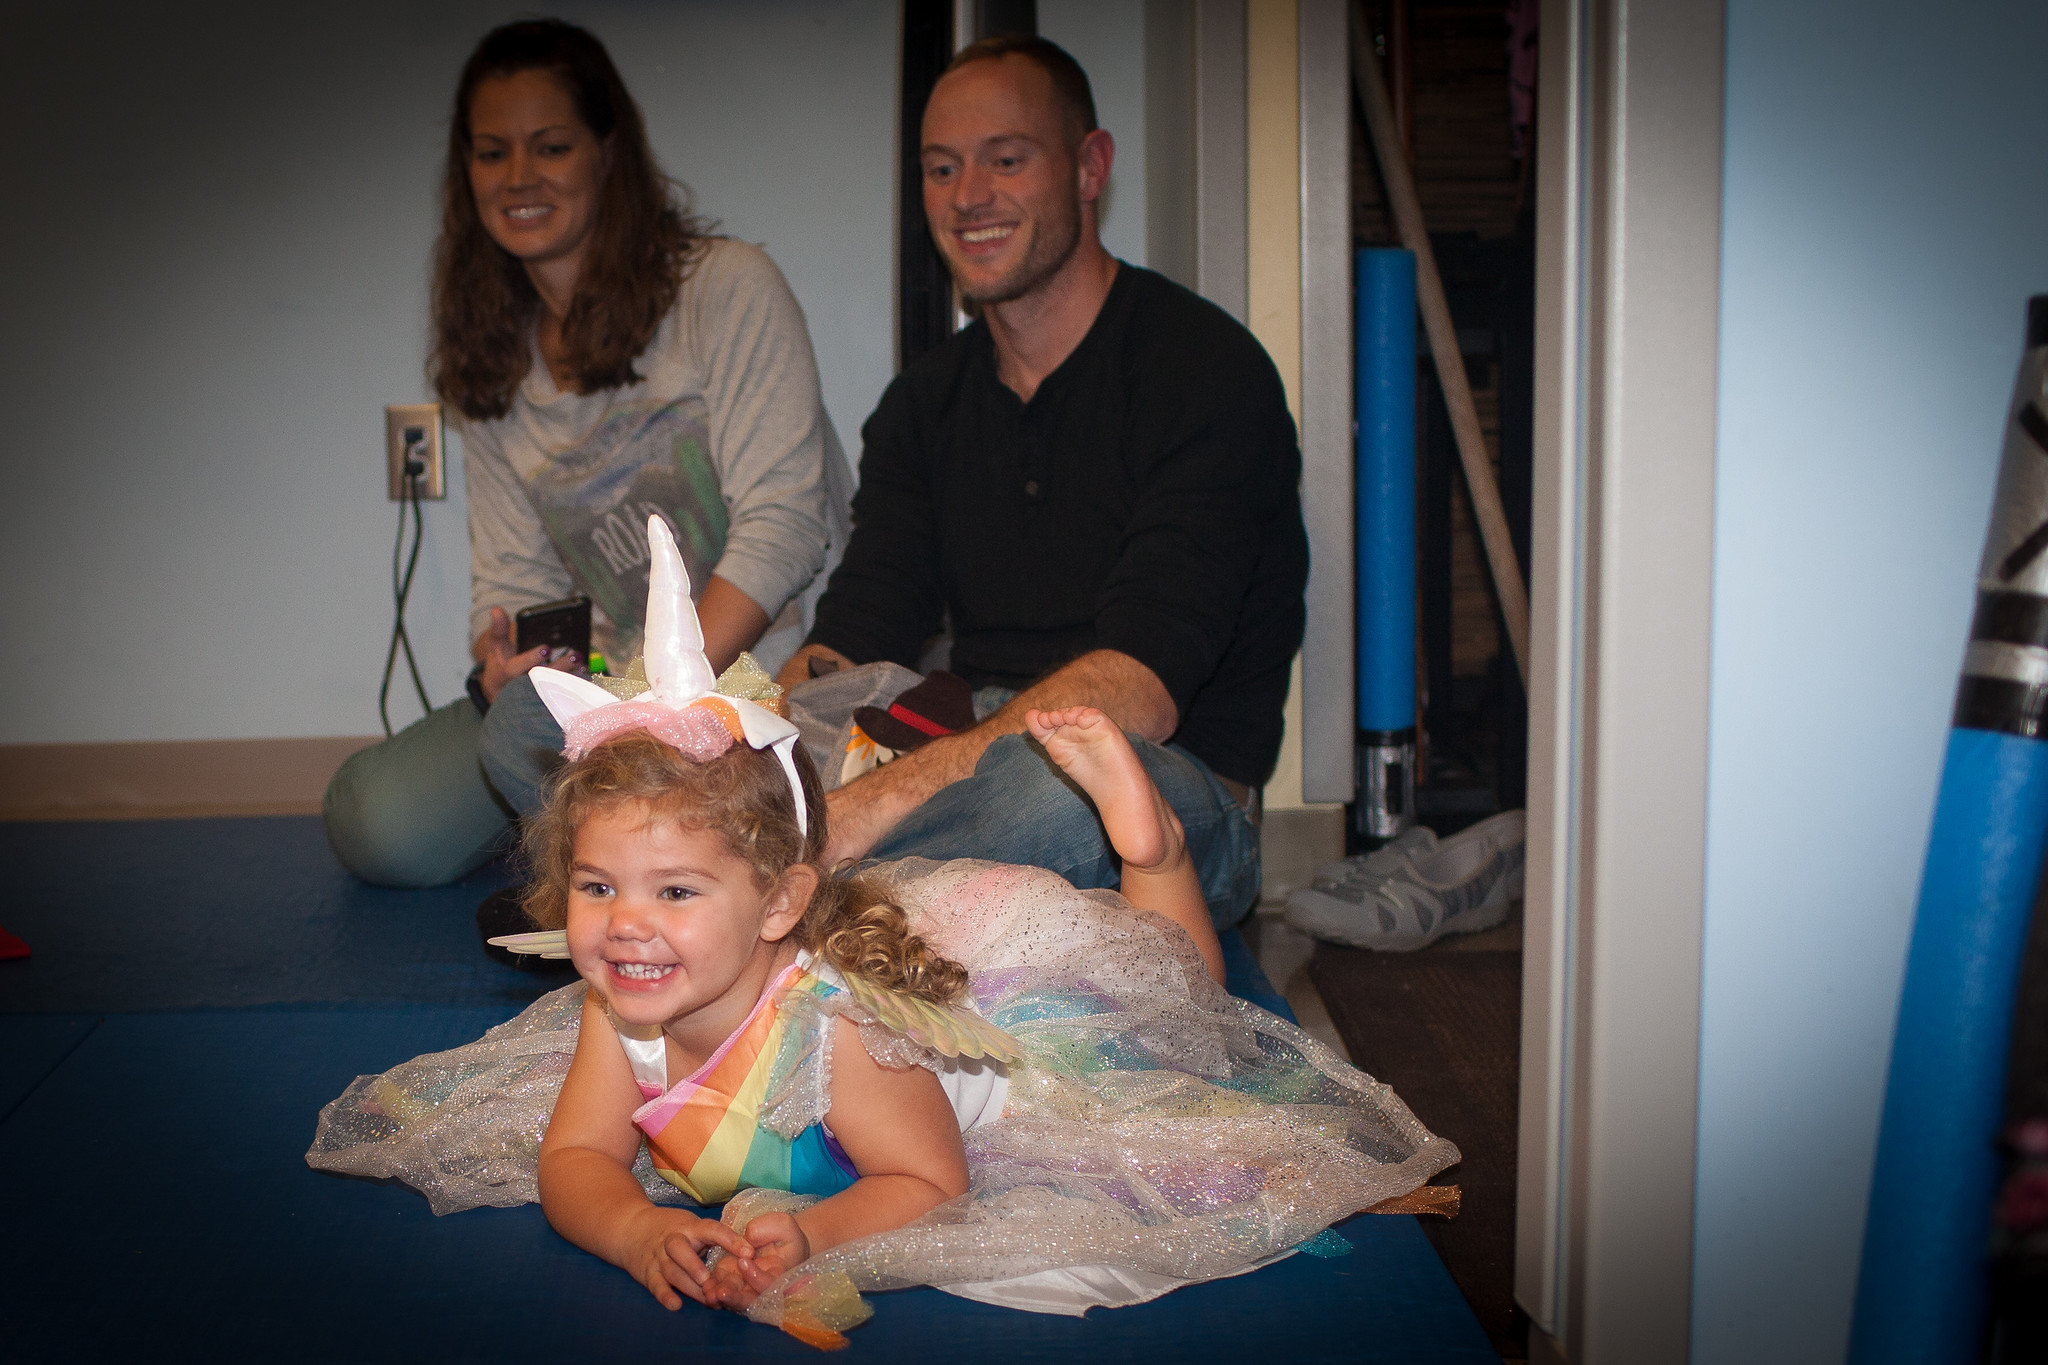 Matt, with his wife, Crystal, and their daughter, Wylie, at last year's PMA Halloween party.